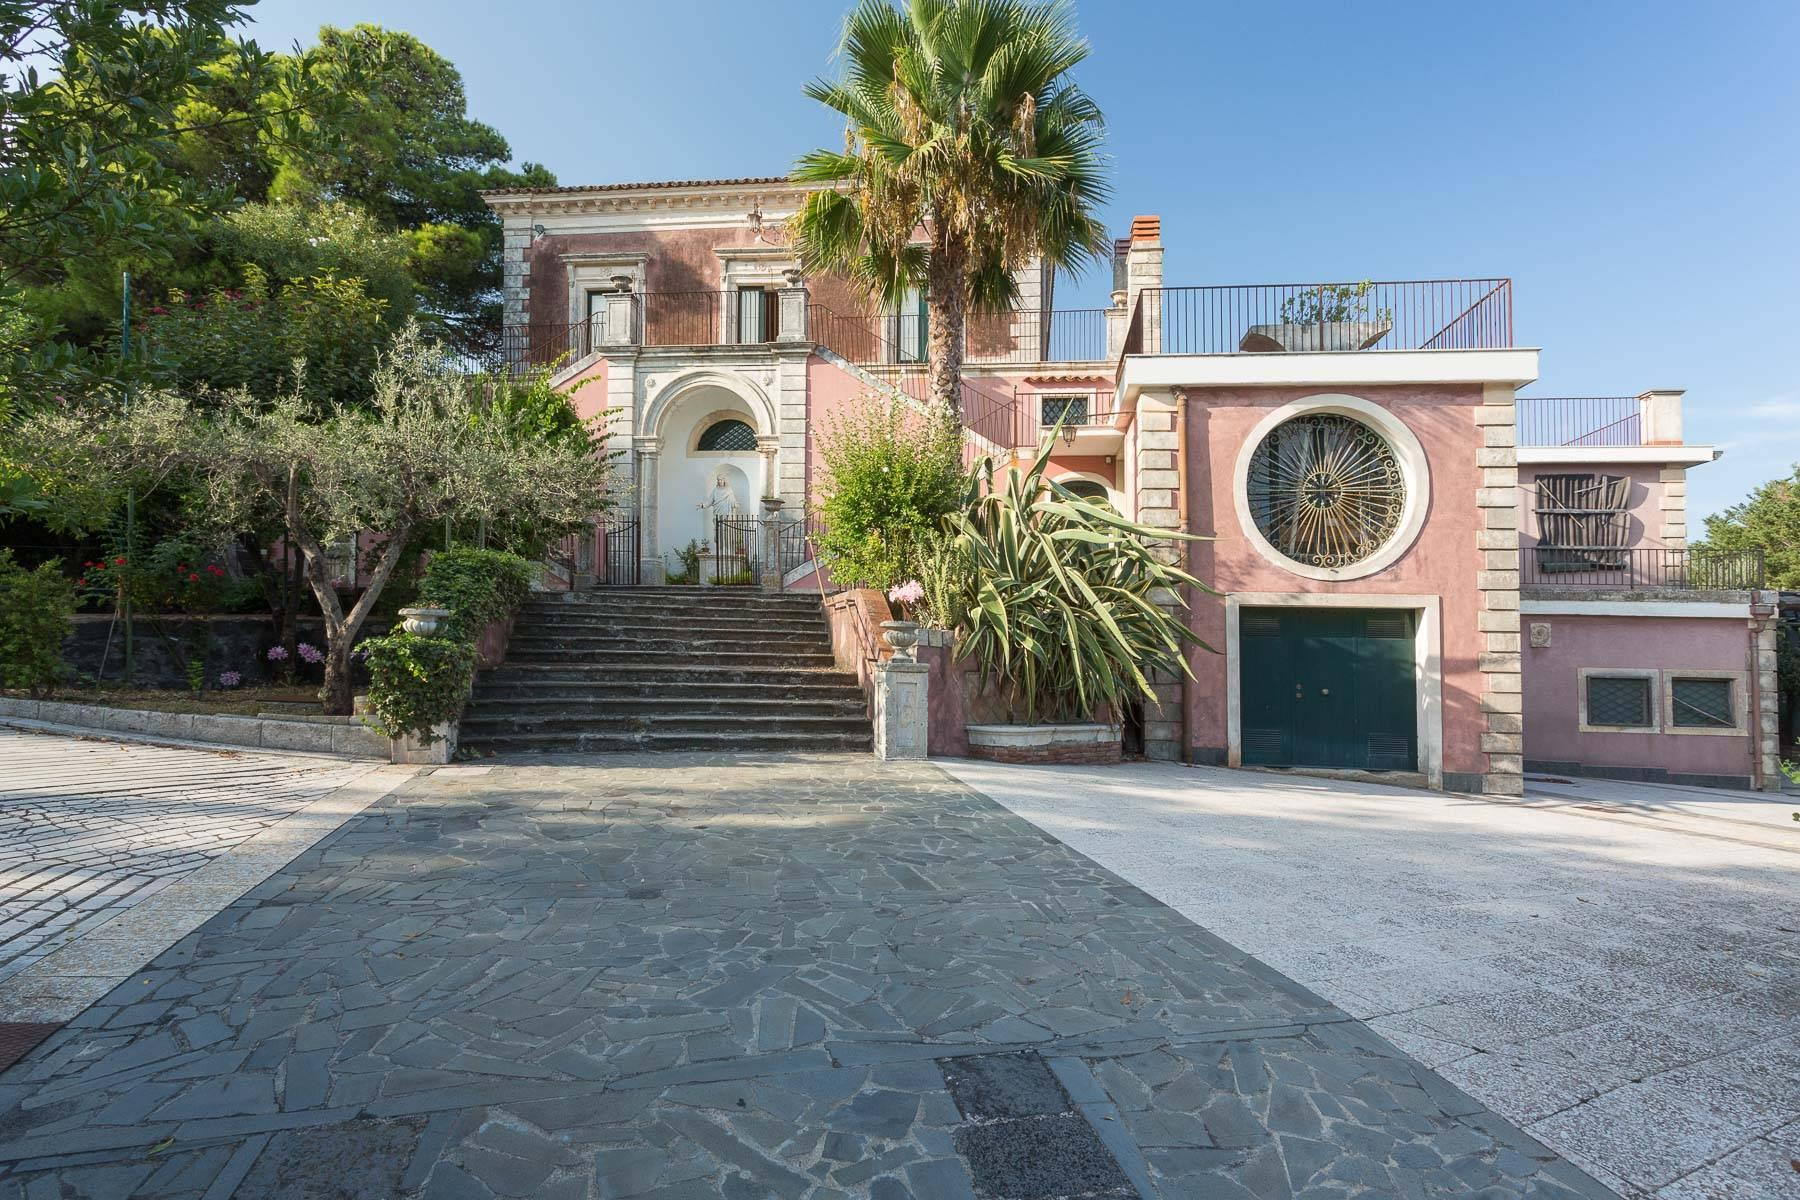 Wonderful Villa on the slopes of Mount Etna - 45